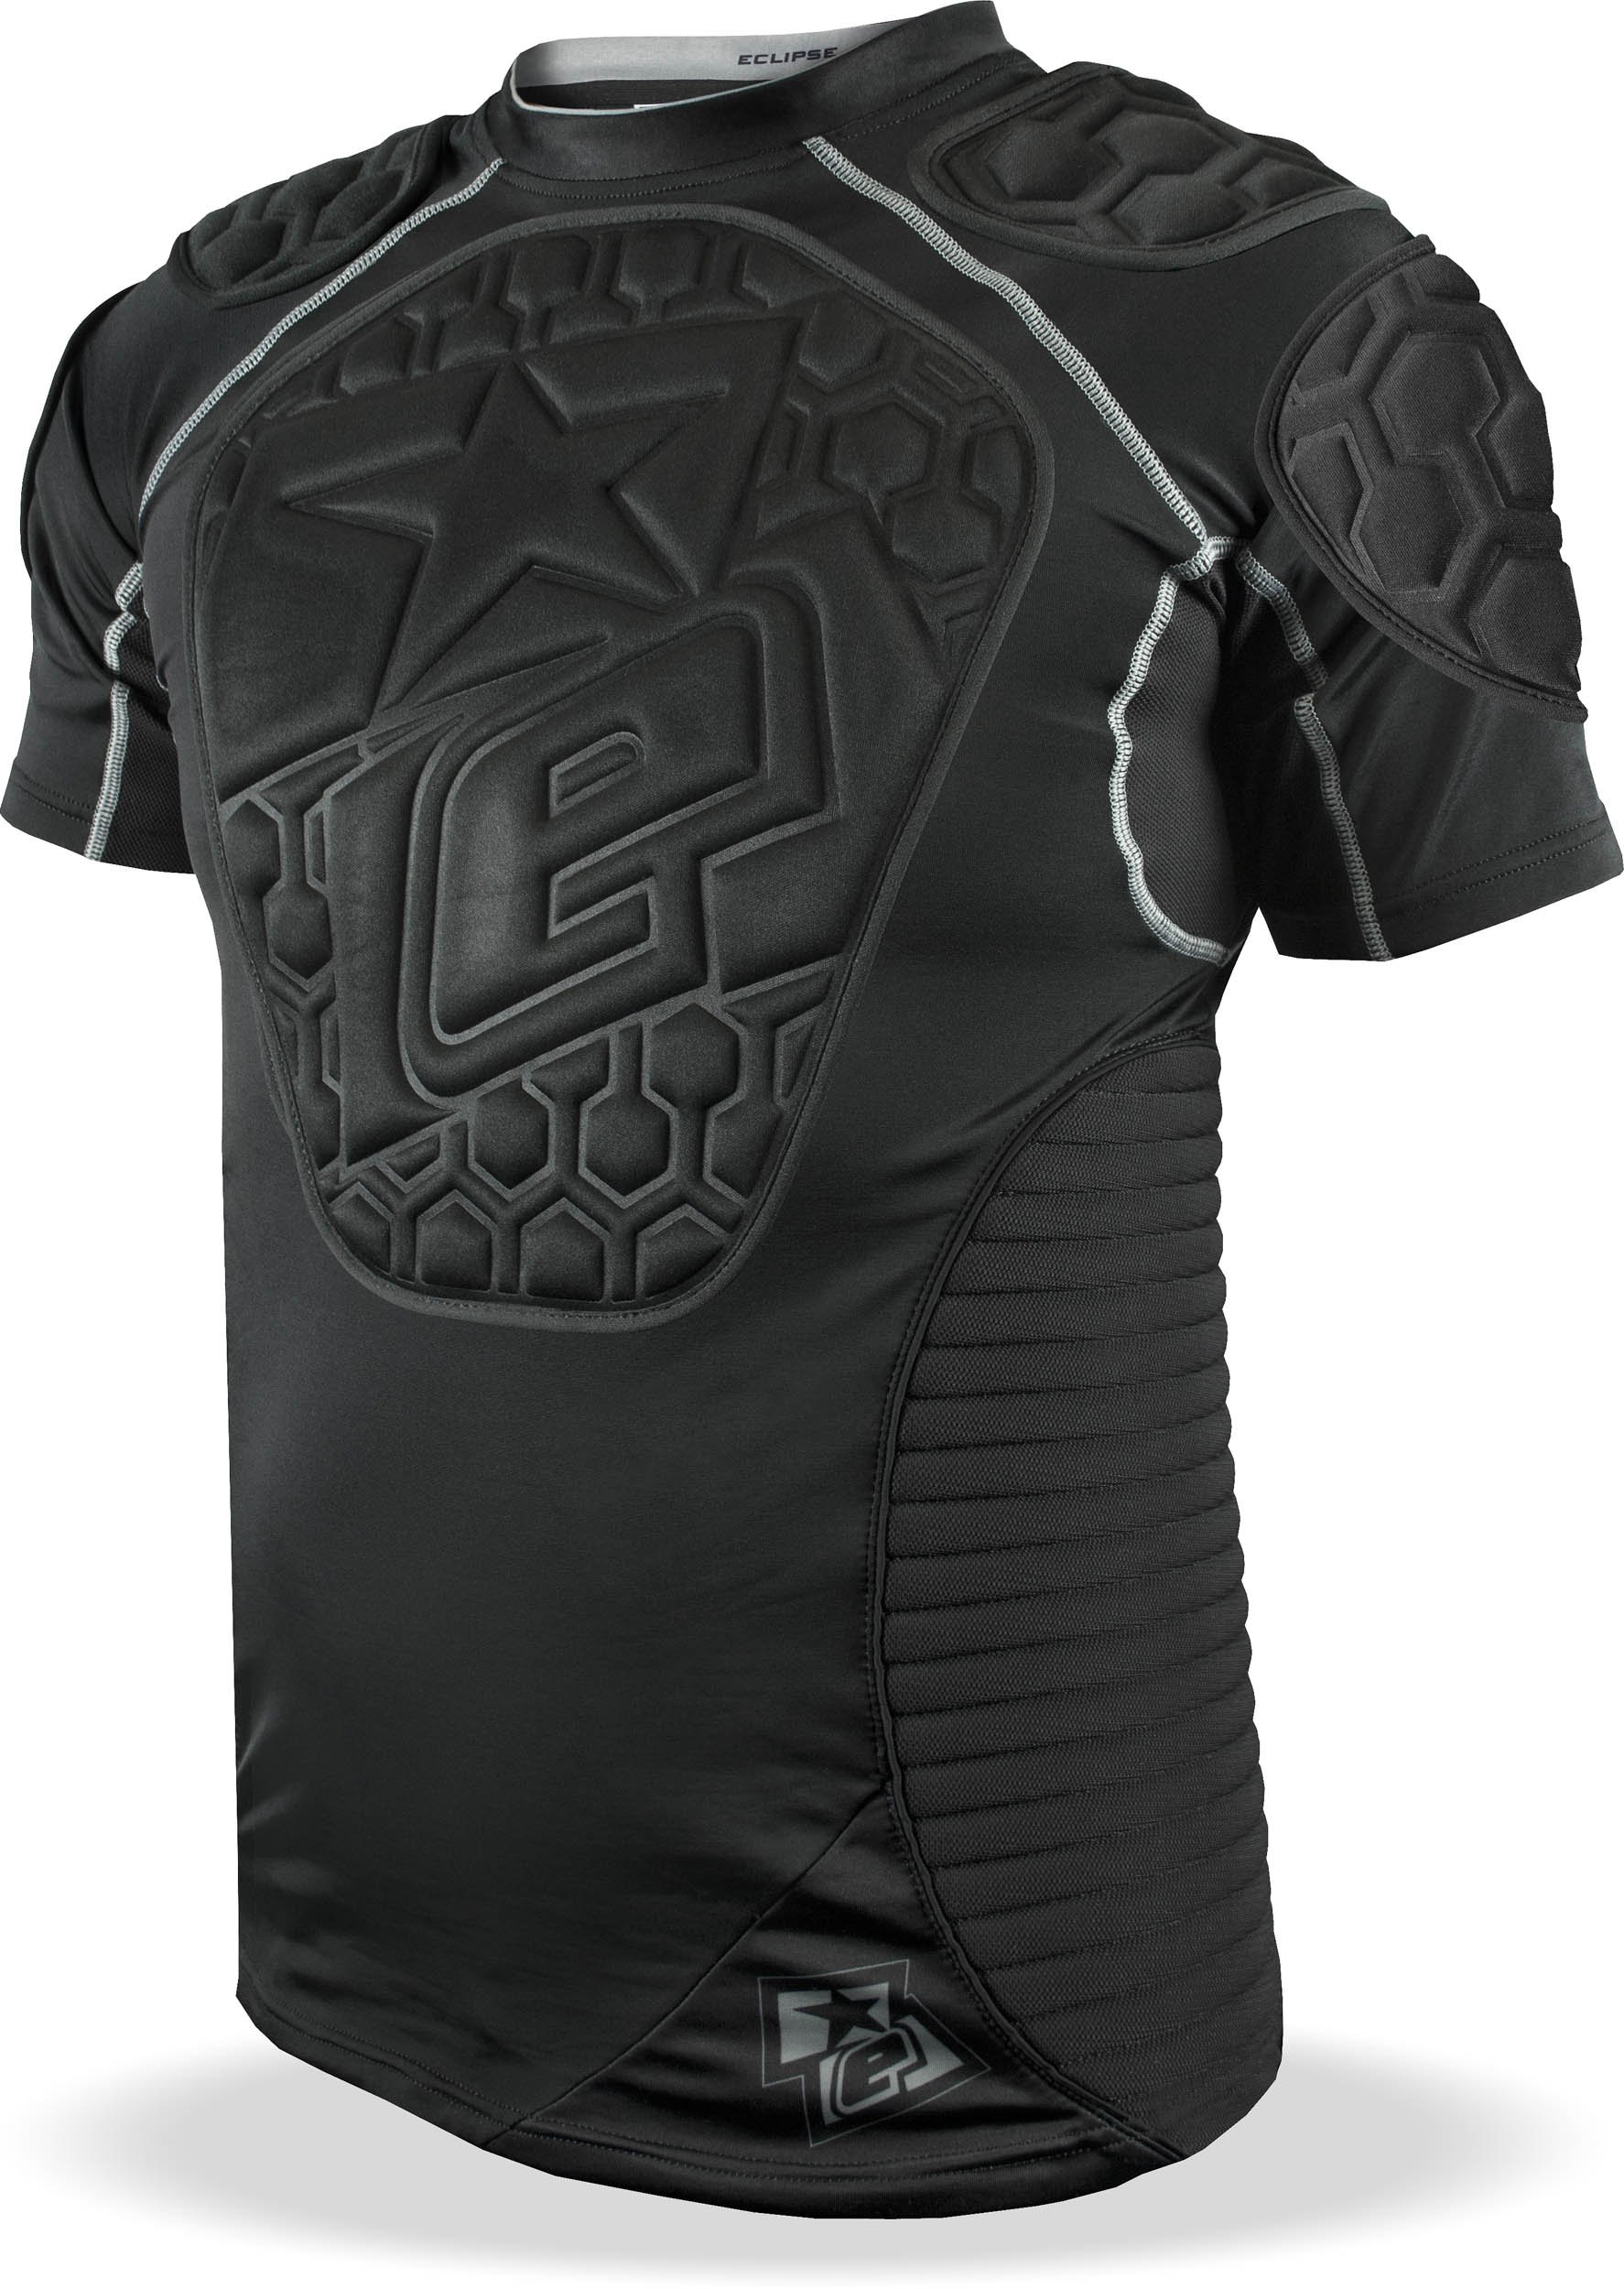 Planet Eclipse Paintball Overload Protective Jersey (Black, XX-Large) by Planet Eclipse